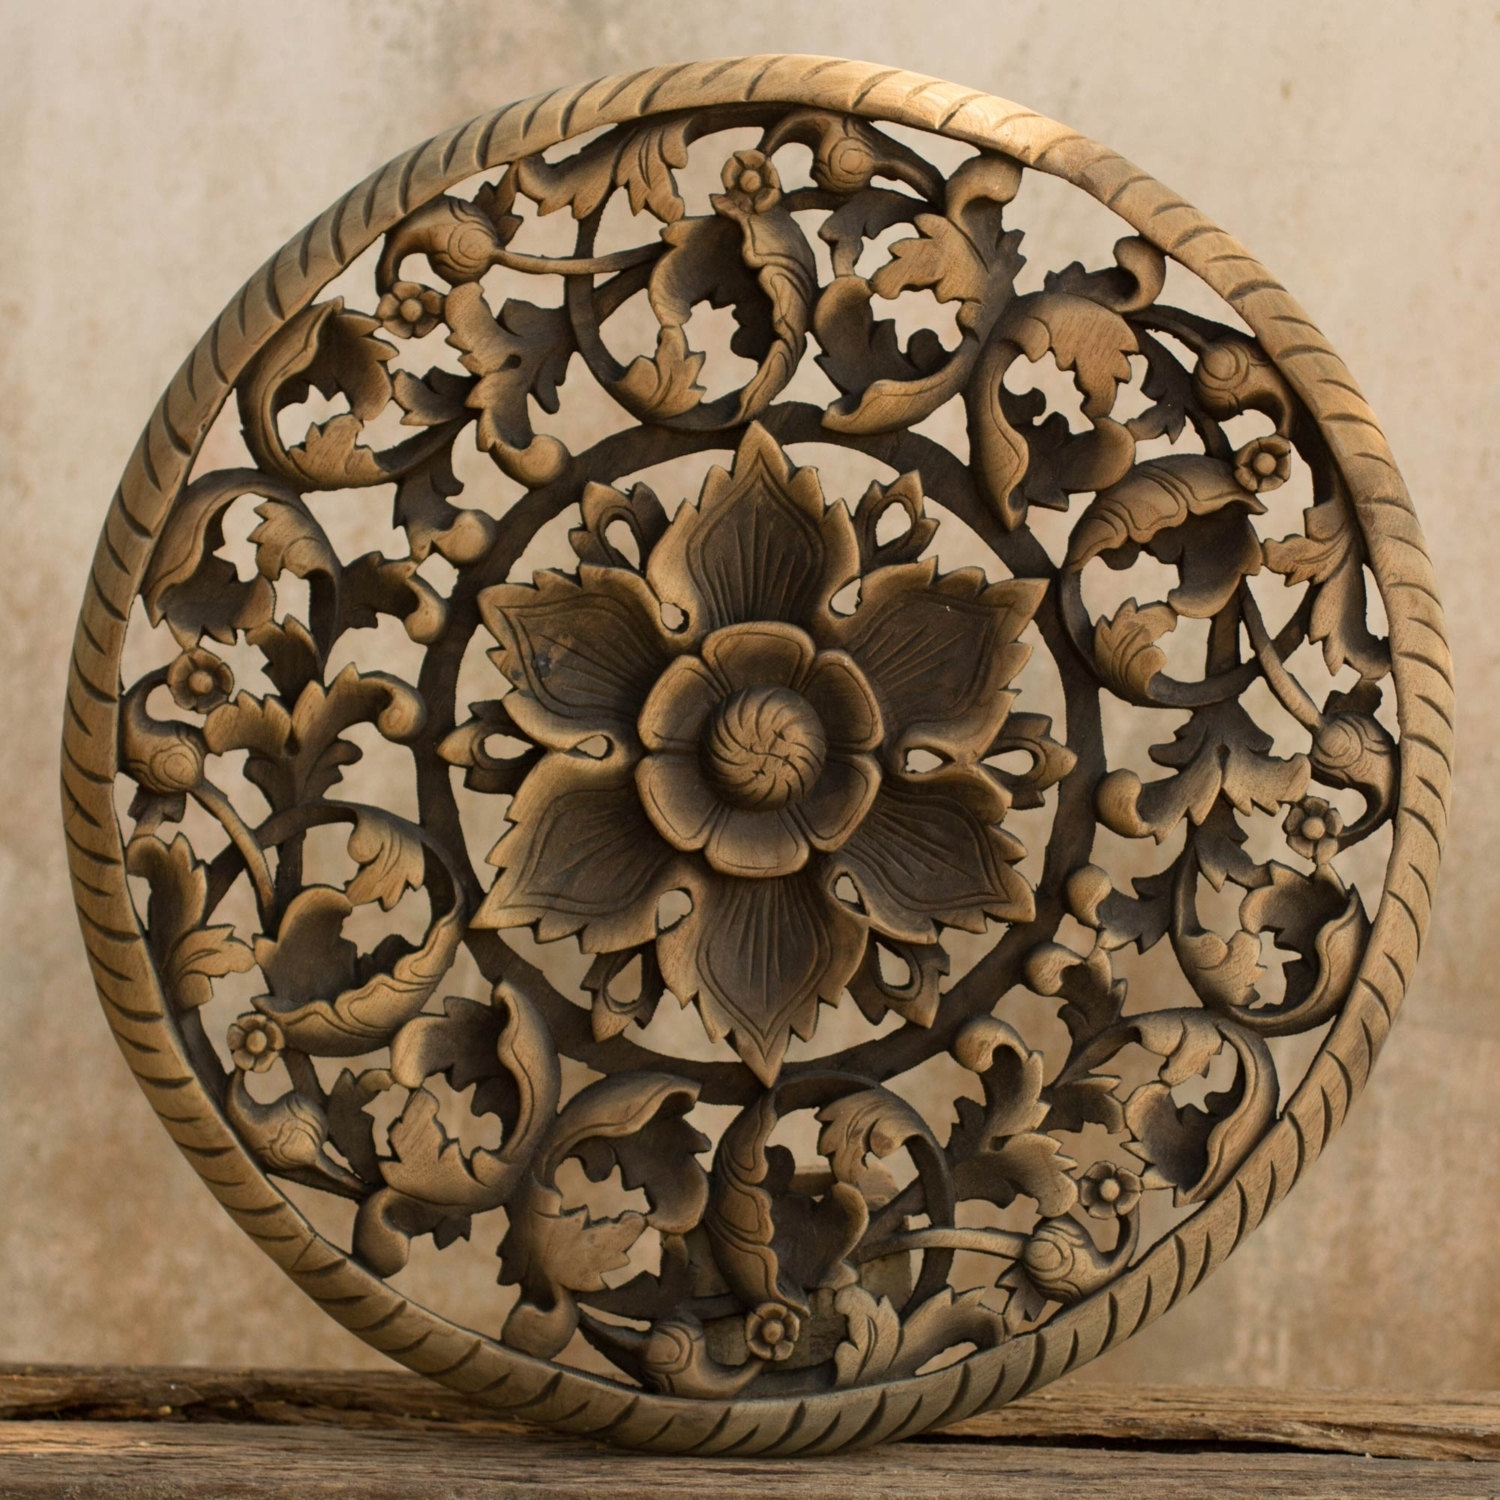 Buy Tree Dimensional Floral Wooden Wall Hanging Online With Regard To Latest Wood Carved Wall Art (View 9 of 20)